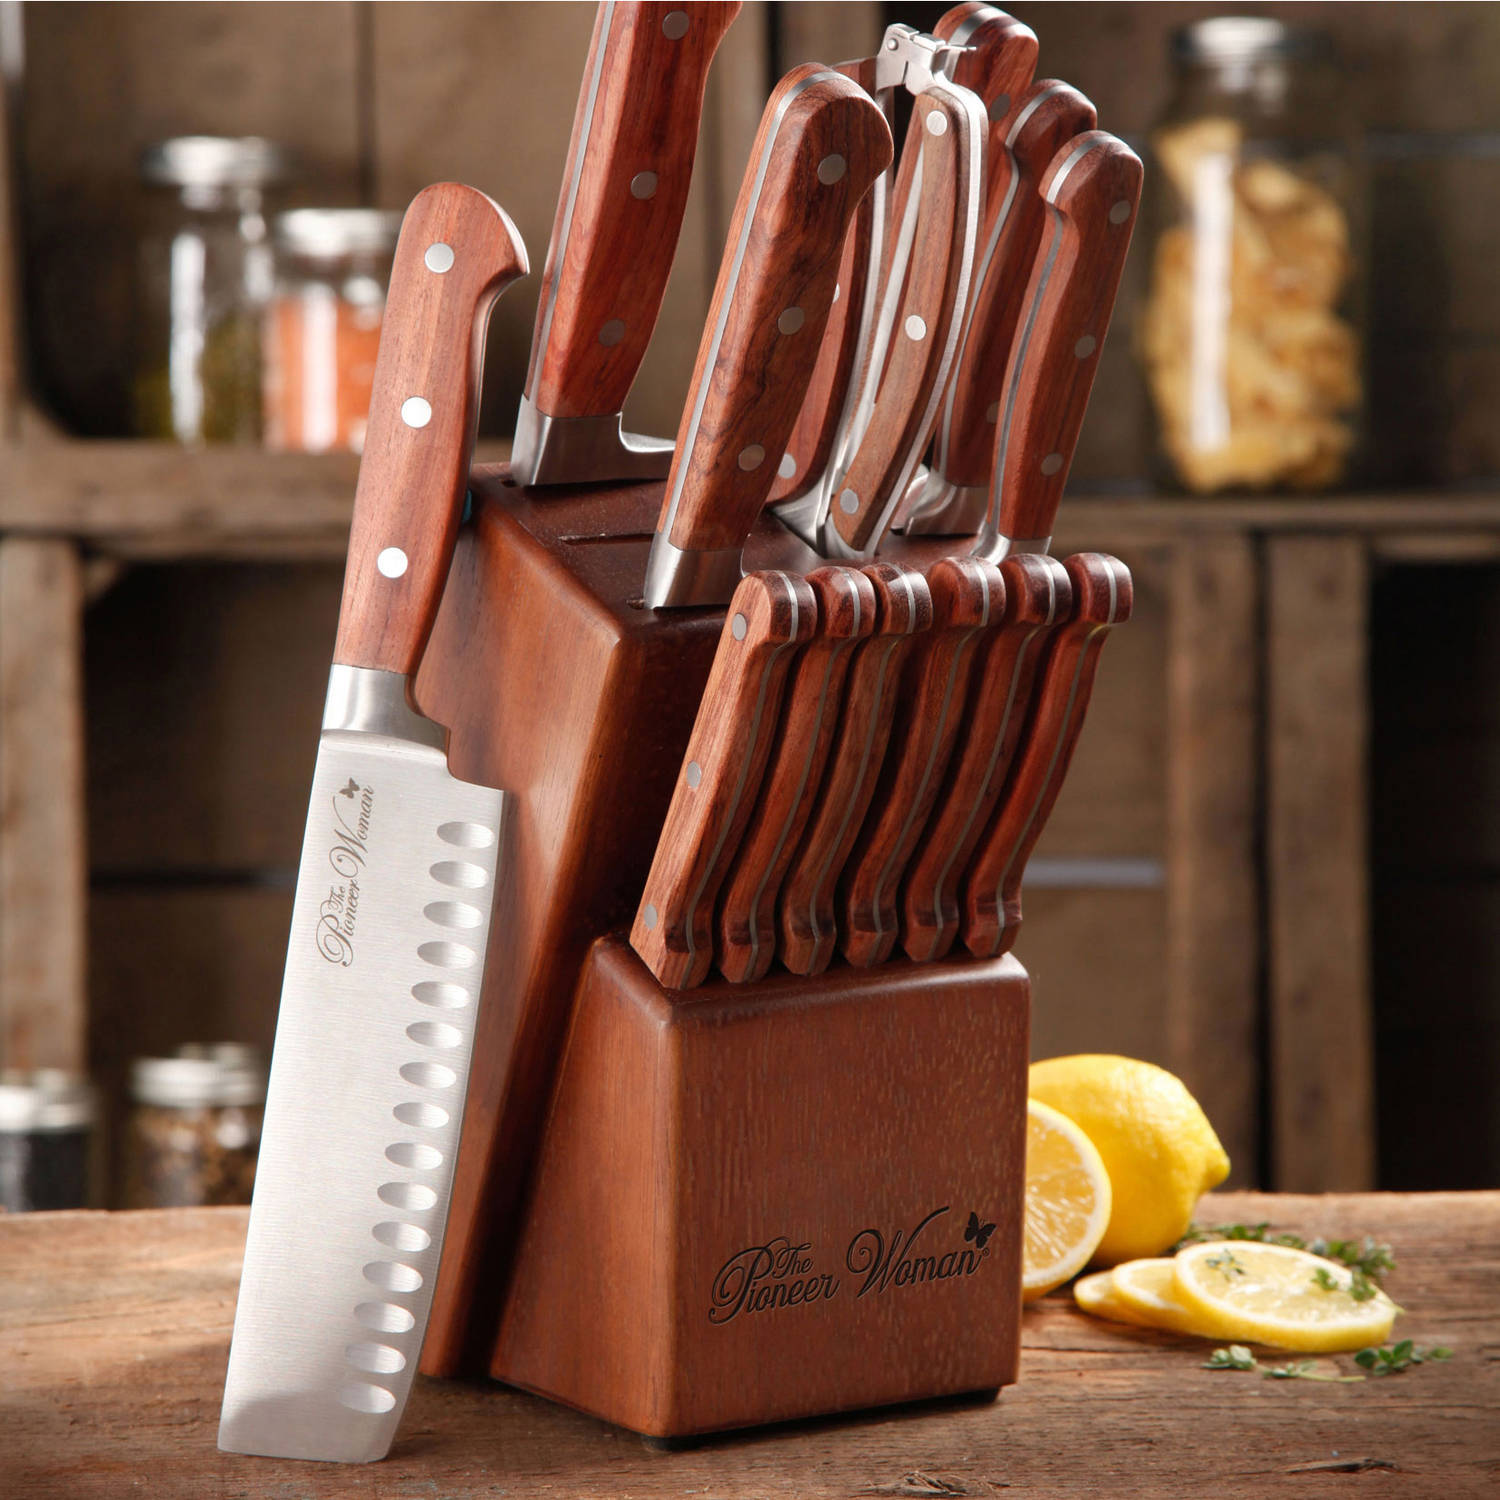 The Pioneer Woman Cowboy Rustic Forged 14 Piece Cutlery